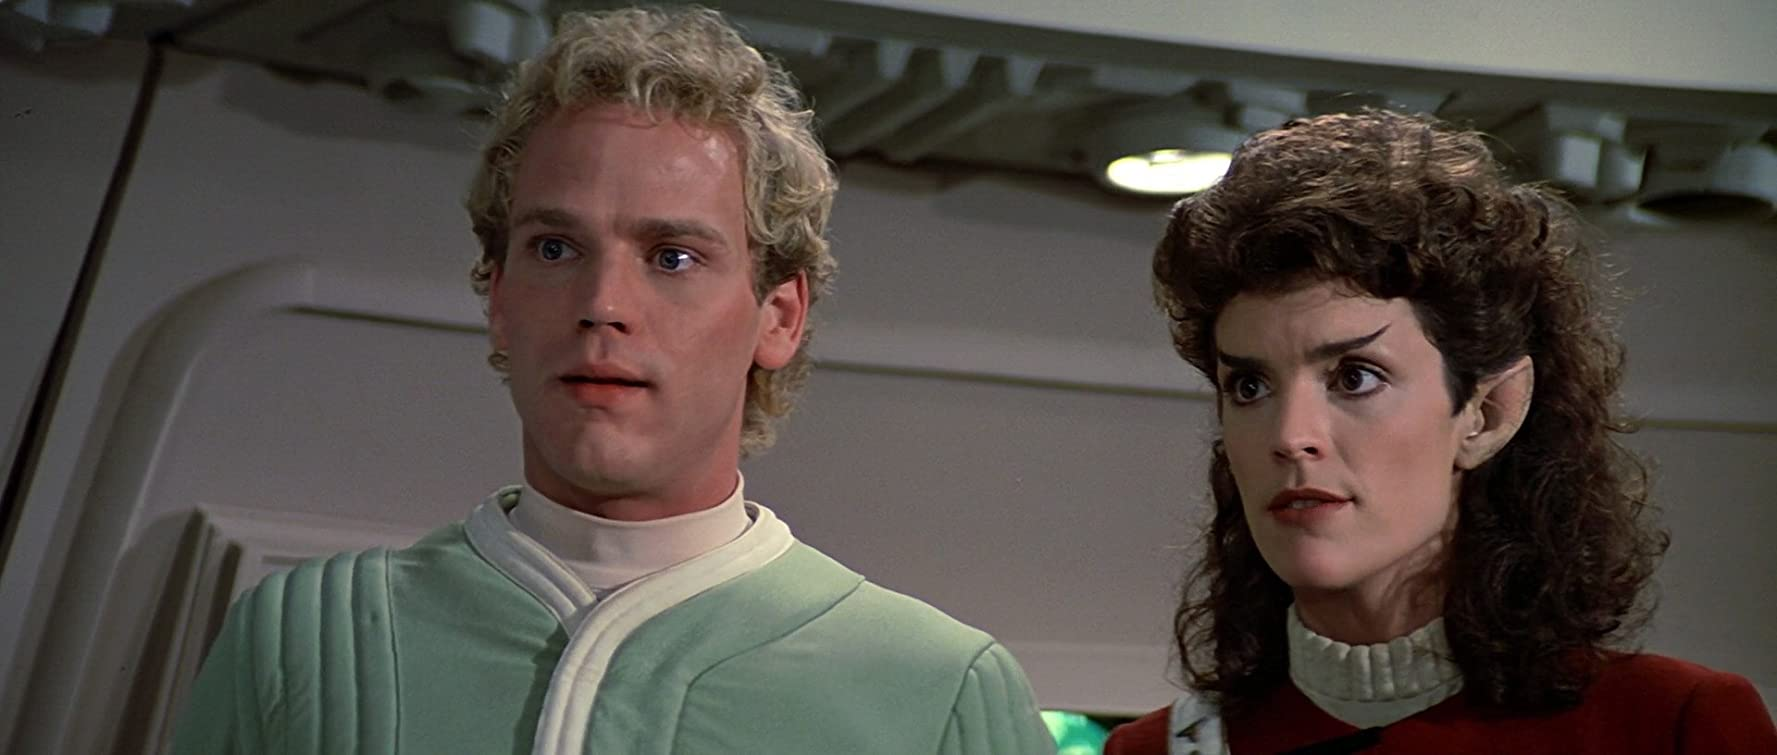 Merritt Butrick and Robin Curtis in Star Trek III: The Search for Spock (1984)